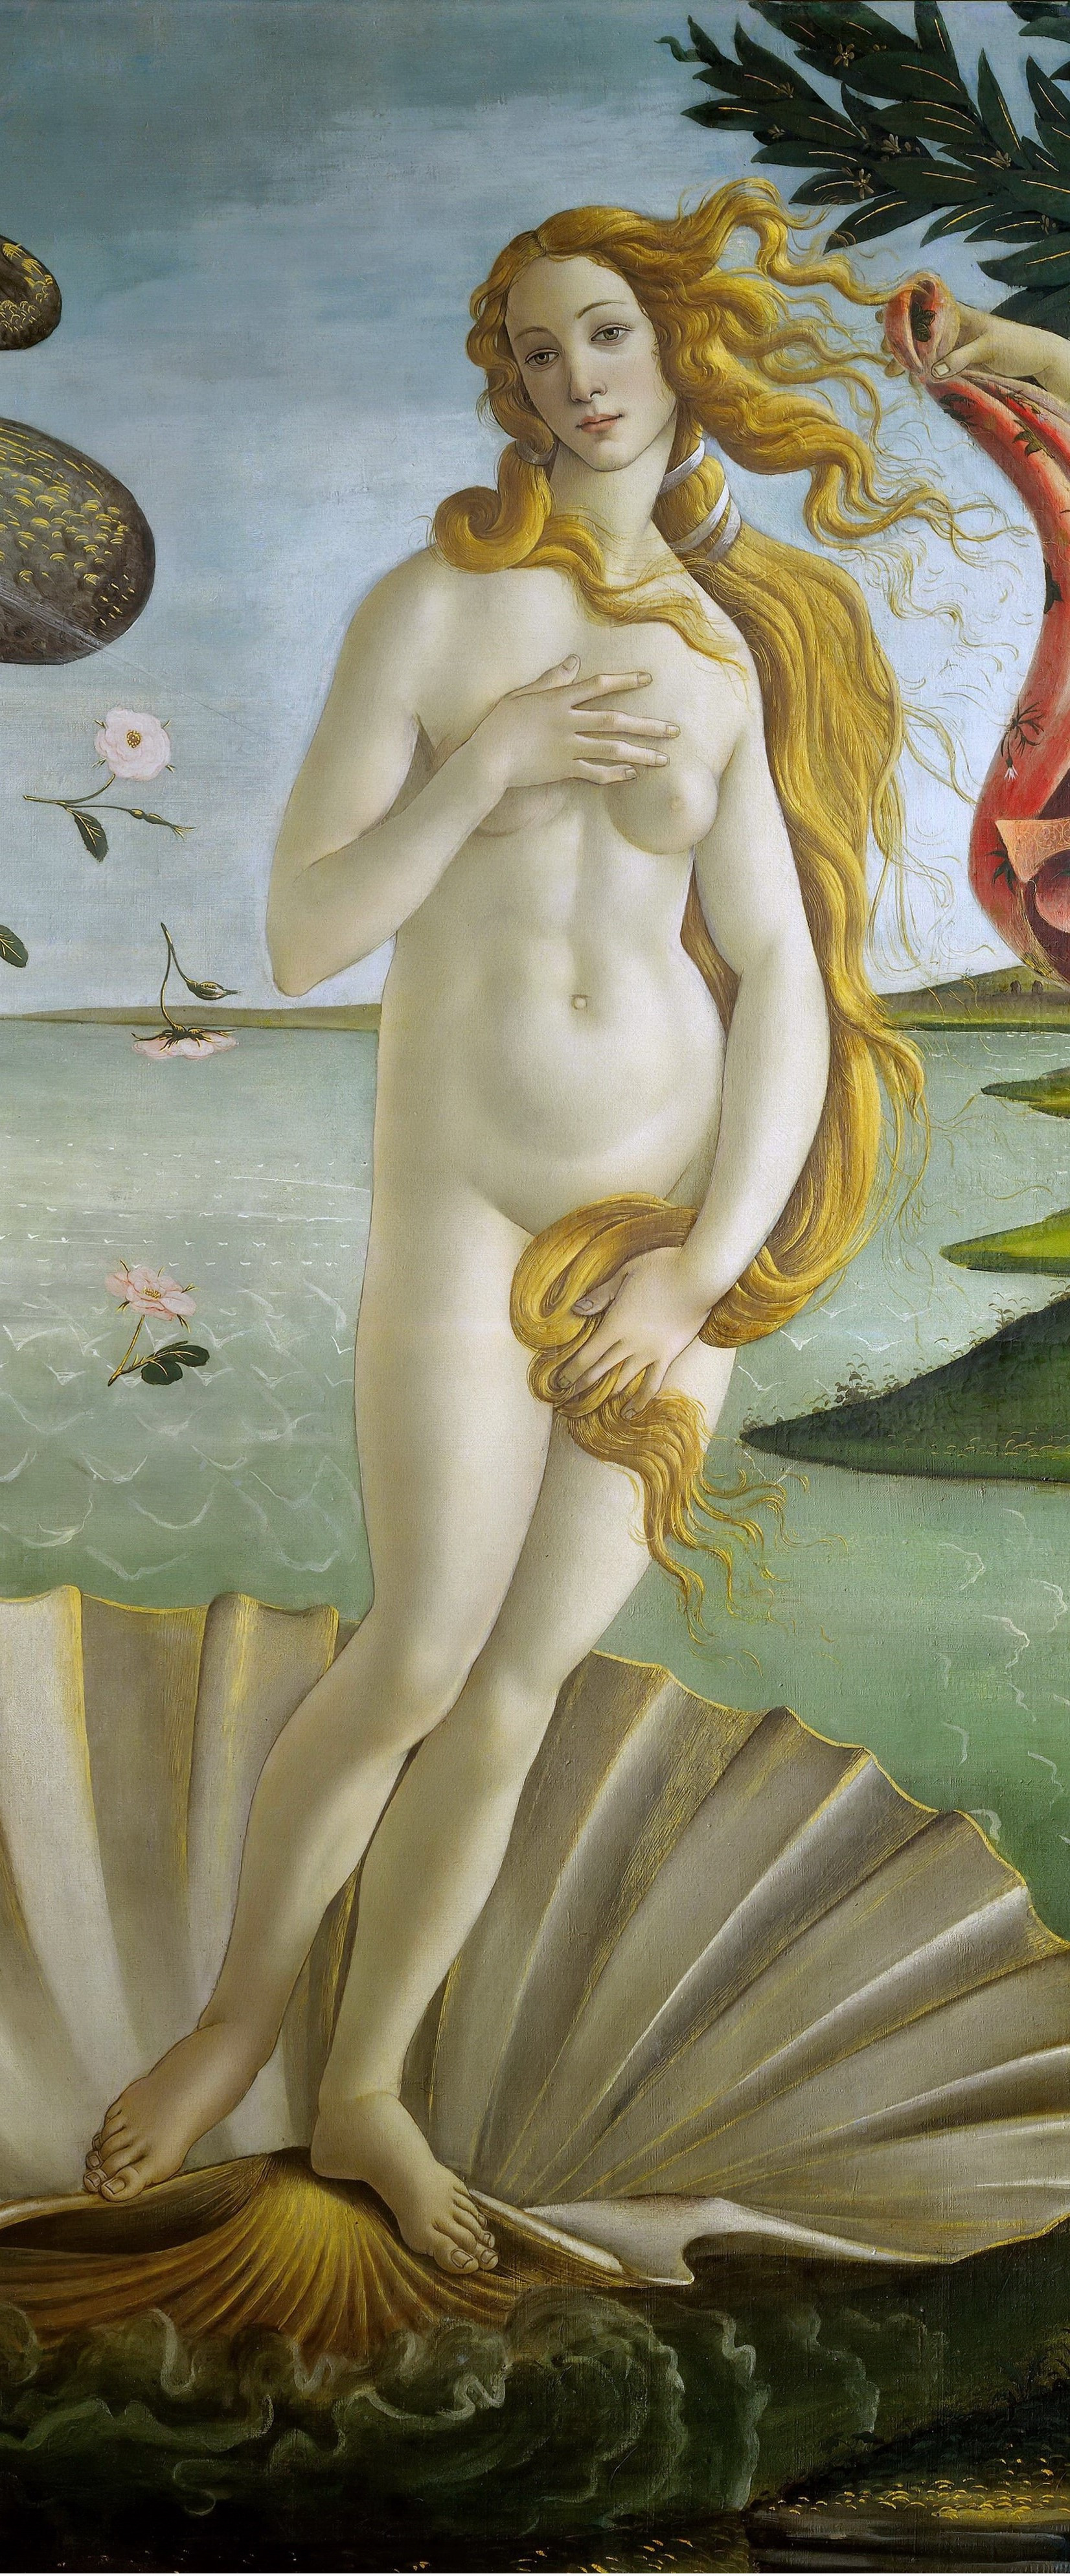 Sandro Botticelli. The birth of Venus (detail)